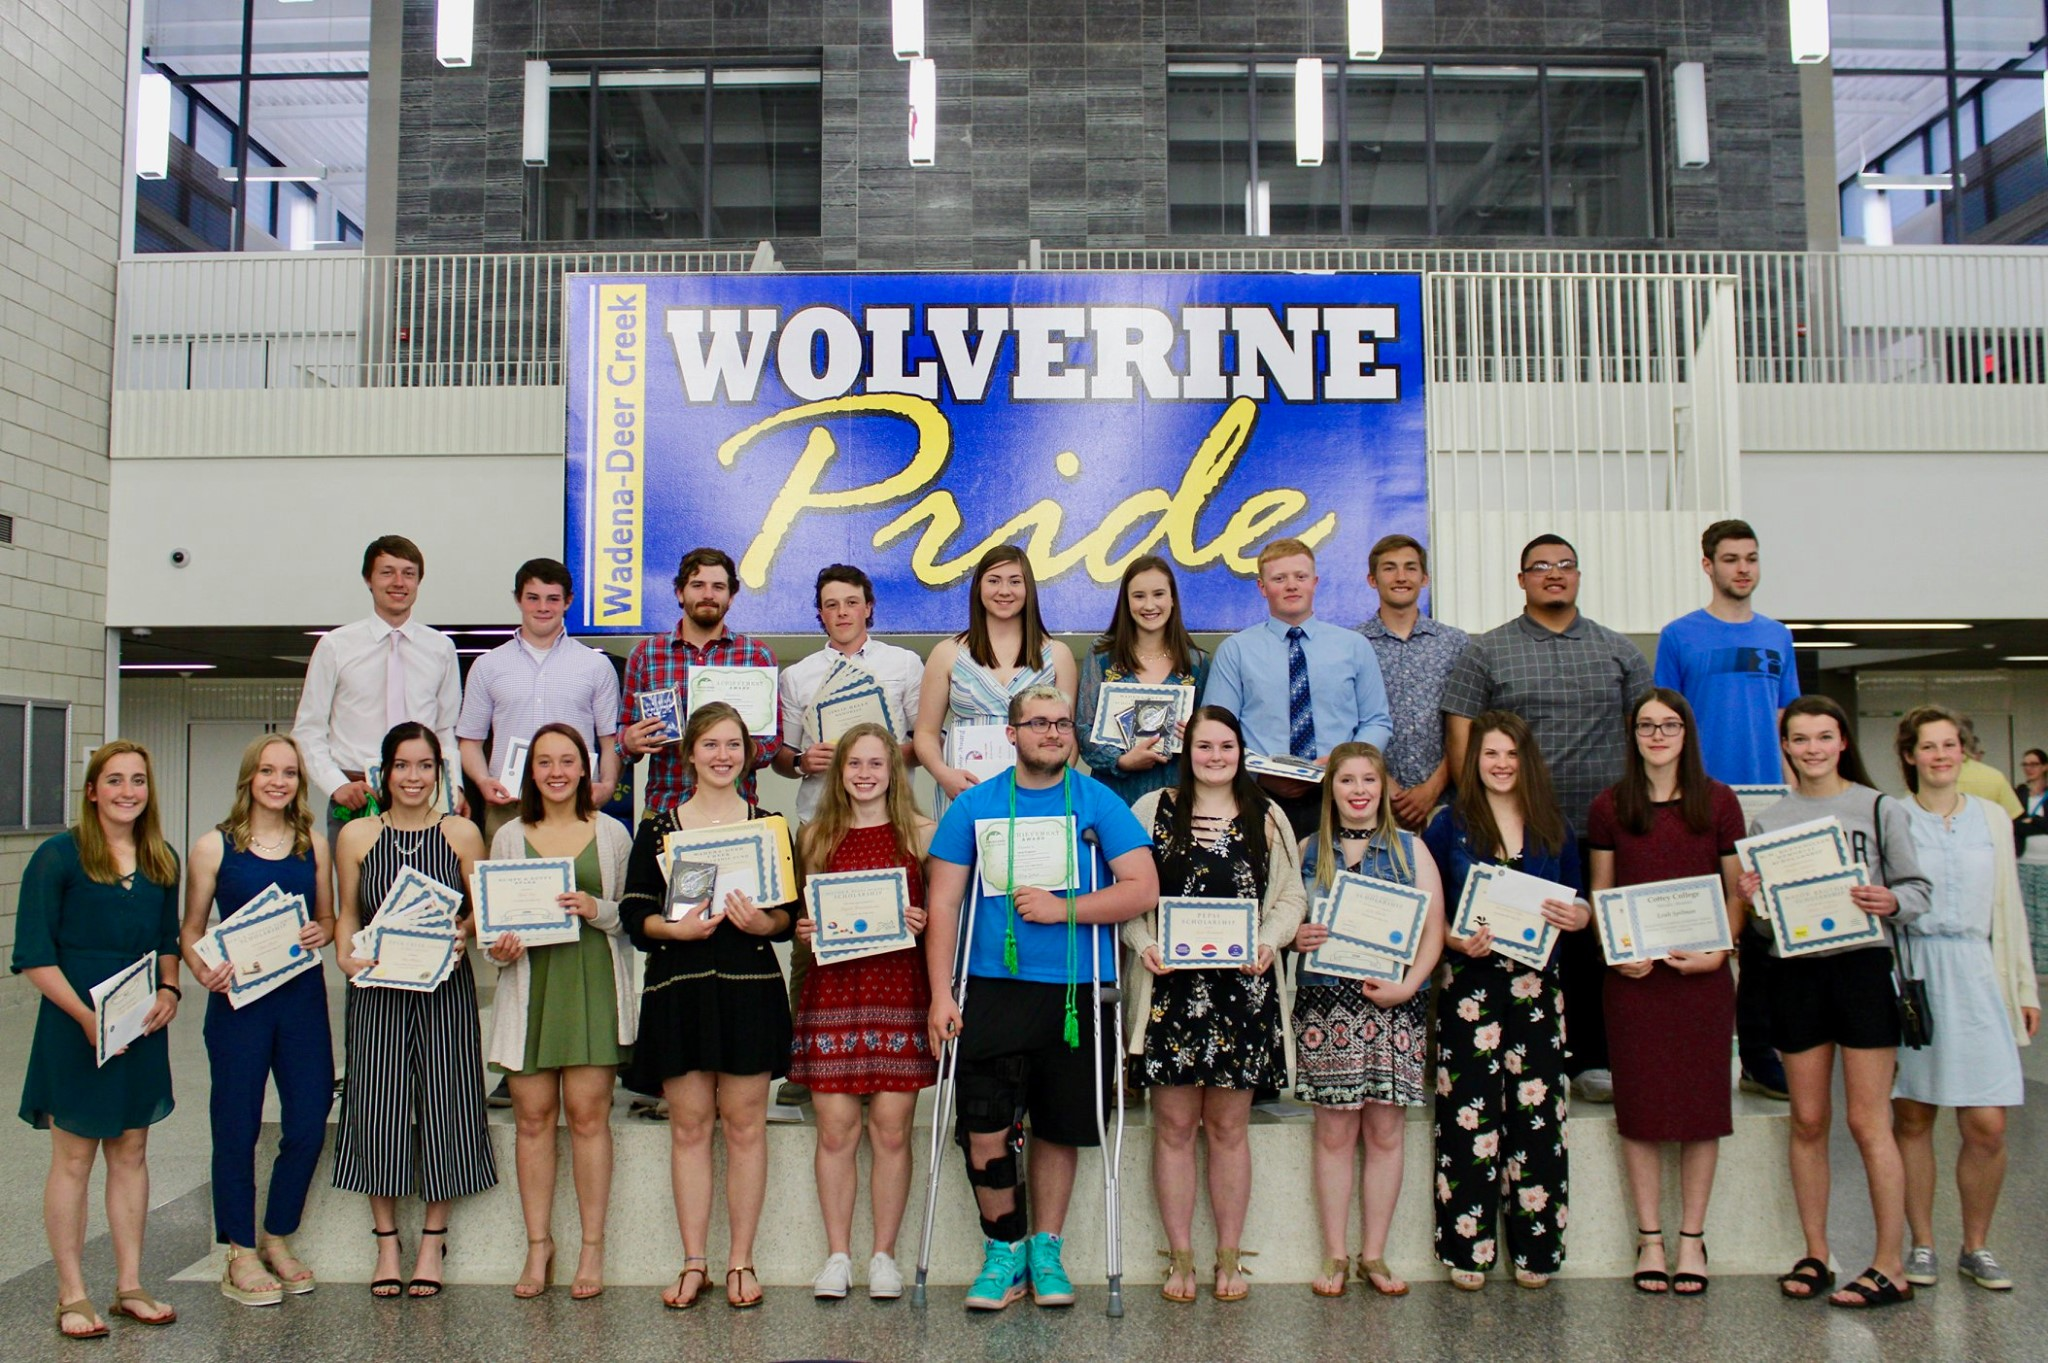 Pictured are the WDC seniors attending the awards program on May 15 (front, from left): Samantha Malone, Elissa Ikola, Grace Hinojos, Kyla Ness, Sophie Kreklau, Abby Motschenbacher, Jaron Englund, Josie Formanek, Eva Baron, Kenzie Salge, Leah Spilman, Jessica Anderson and Lael Bervig; back, from left: Dawson Lupkes, Isaac Hale, Maxwell Phillips, Colby Schertler, Kylee Hopp, Ashley Adams, Wyatt Hamann, Cade Kapphahn, Steven Thomas and Bailey Kaufman. Not pictured: Amber Moen. Photo by Chelsey Jo Dagen, WDC Schools.